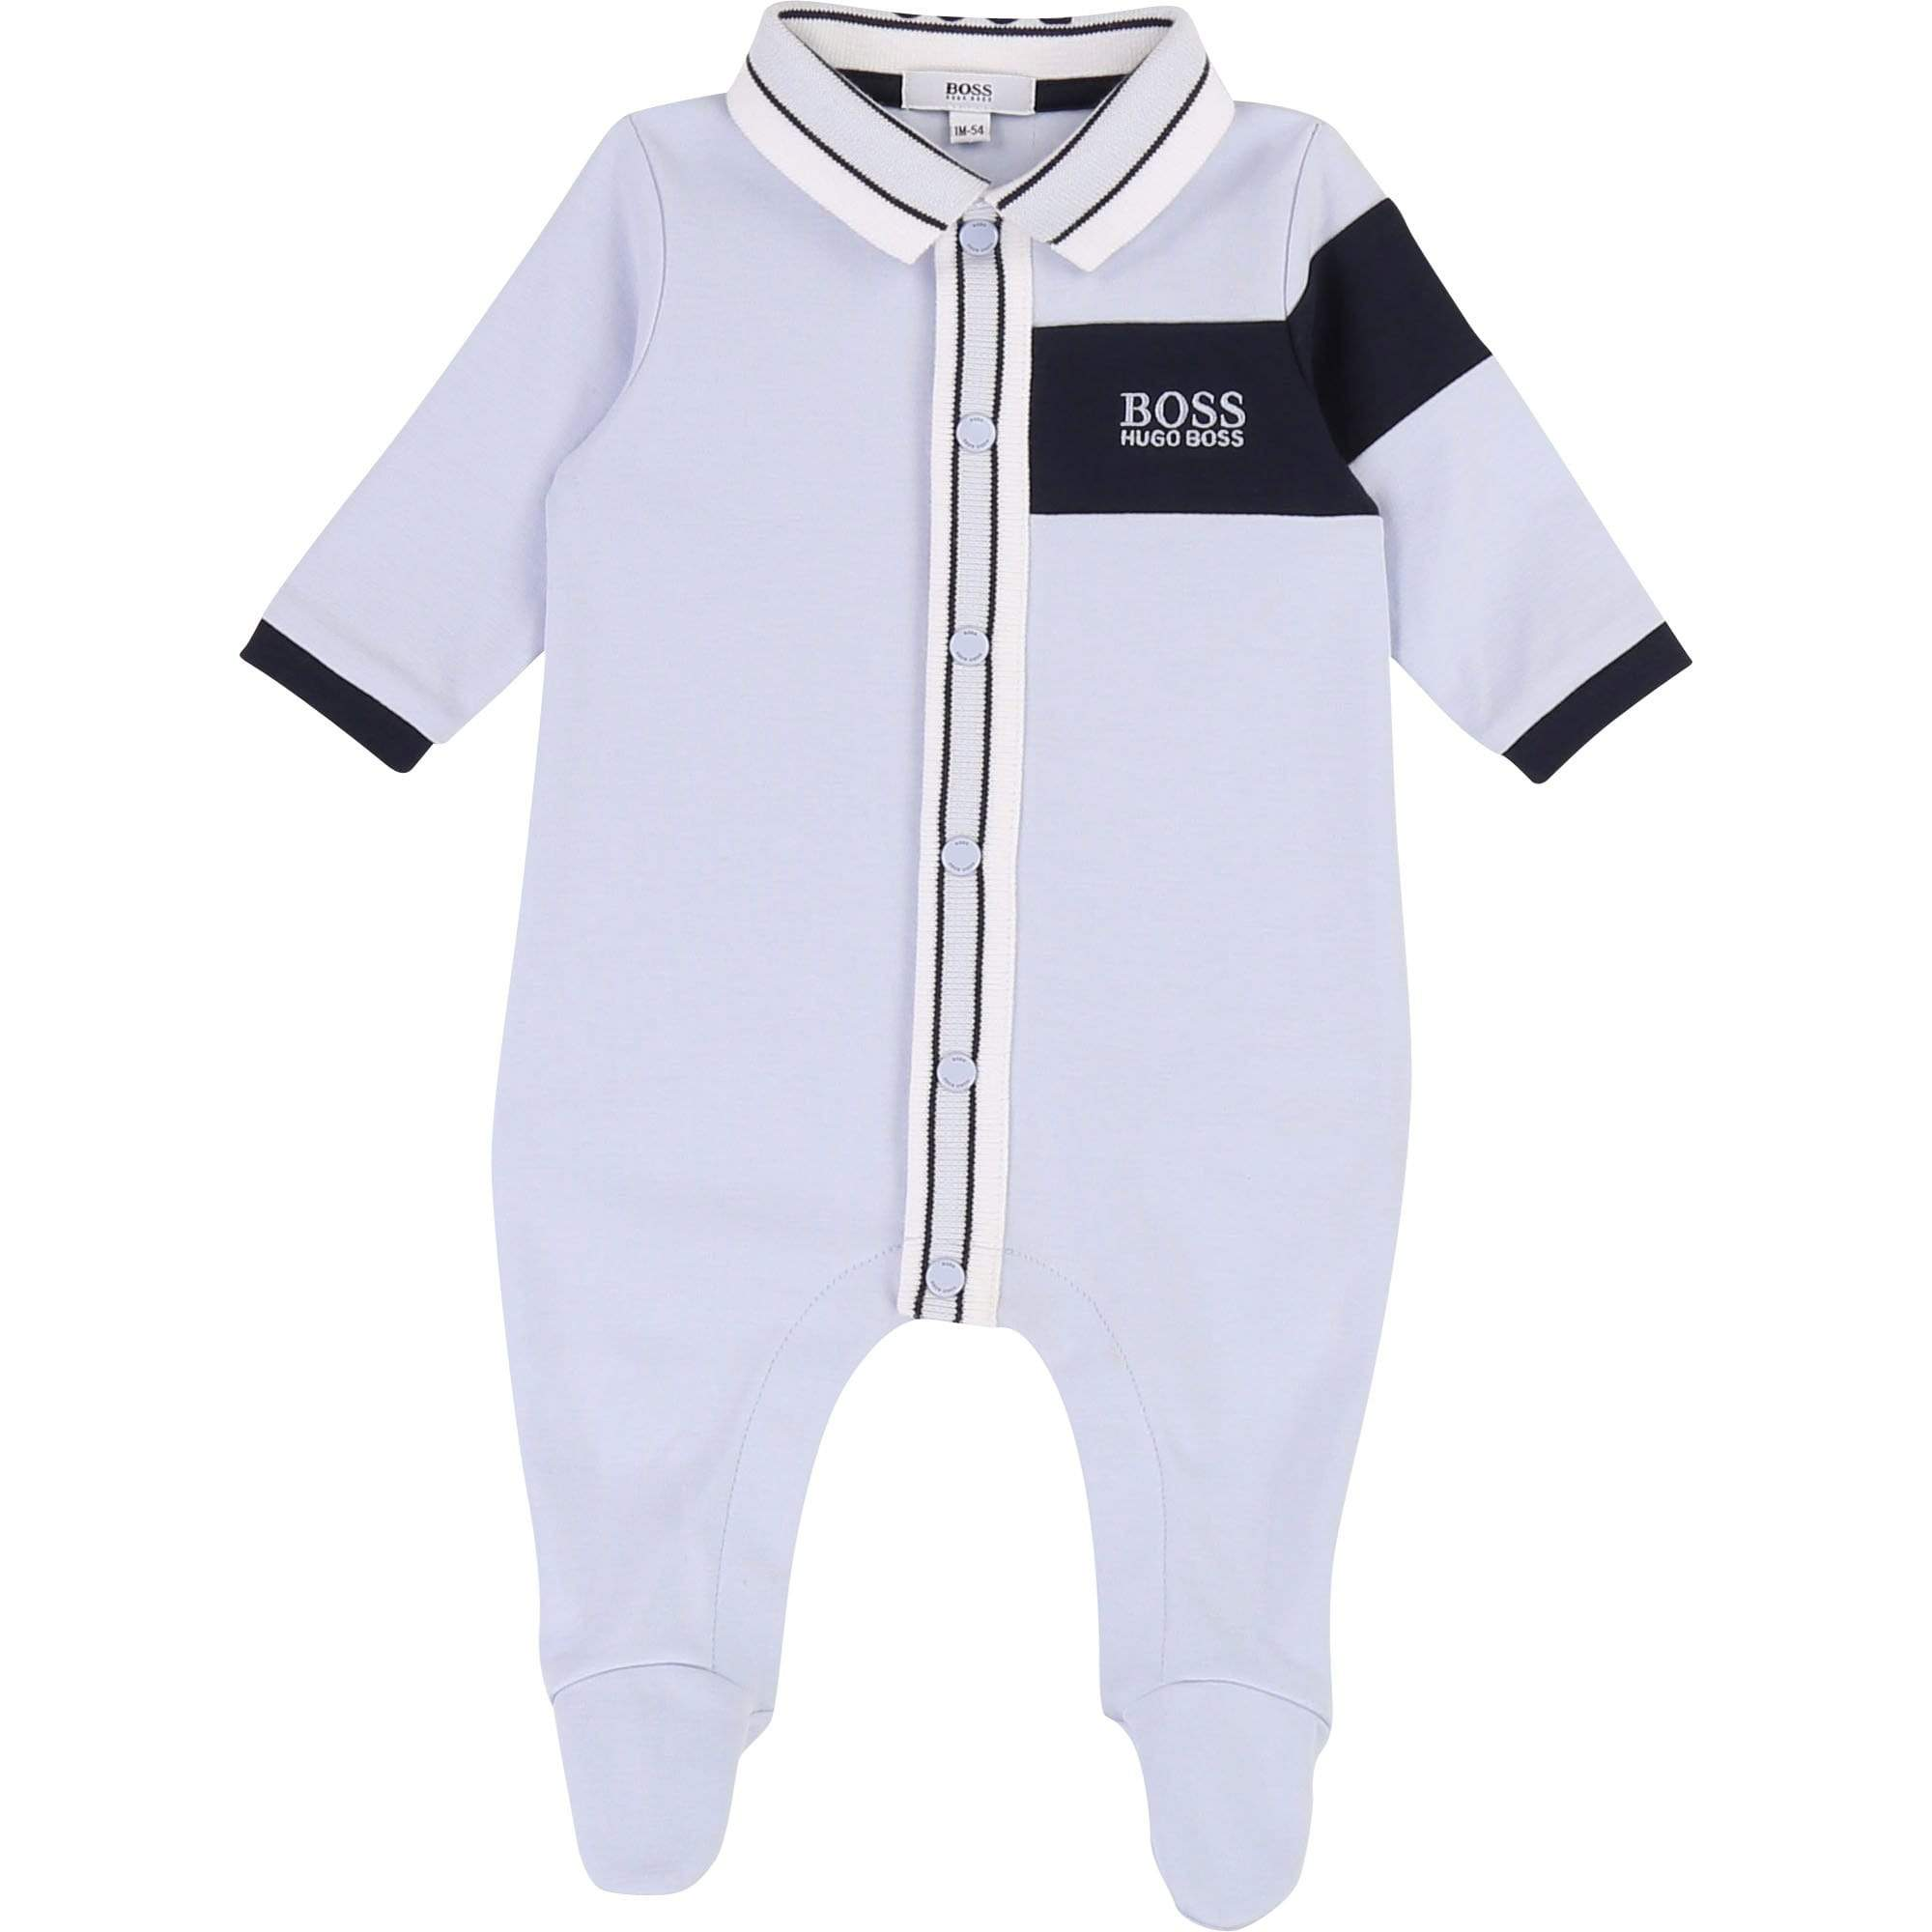 Hugo Boss Pyjamas Pyjama en interlock coton